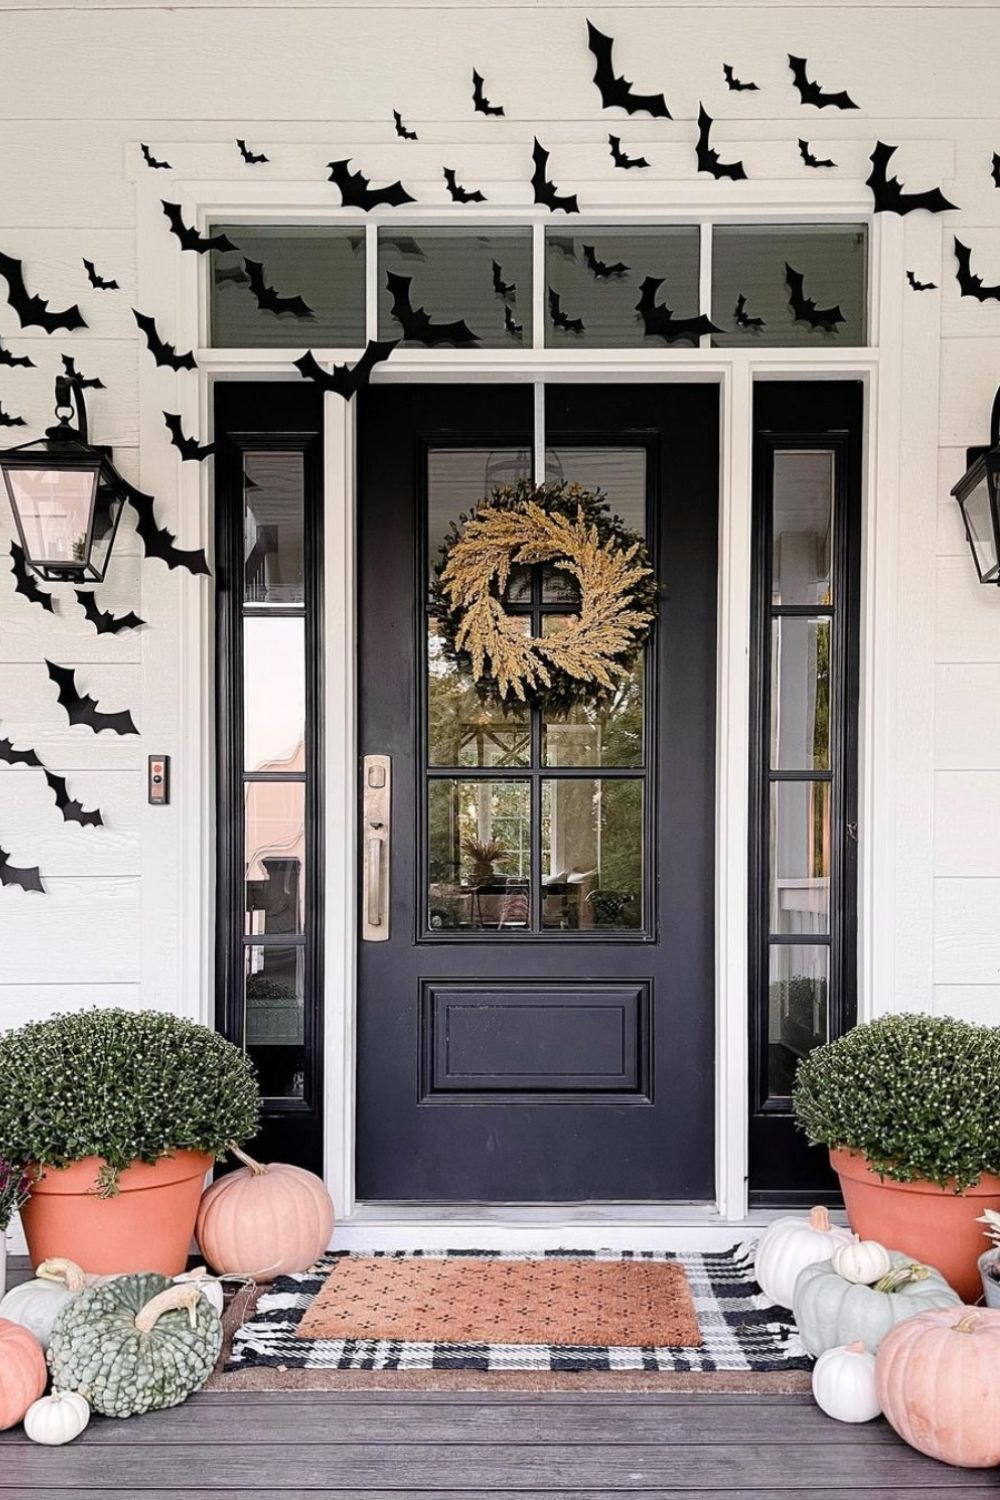 Spooky Halloween outside decoration 2021 with bat, ghost, skeleton